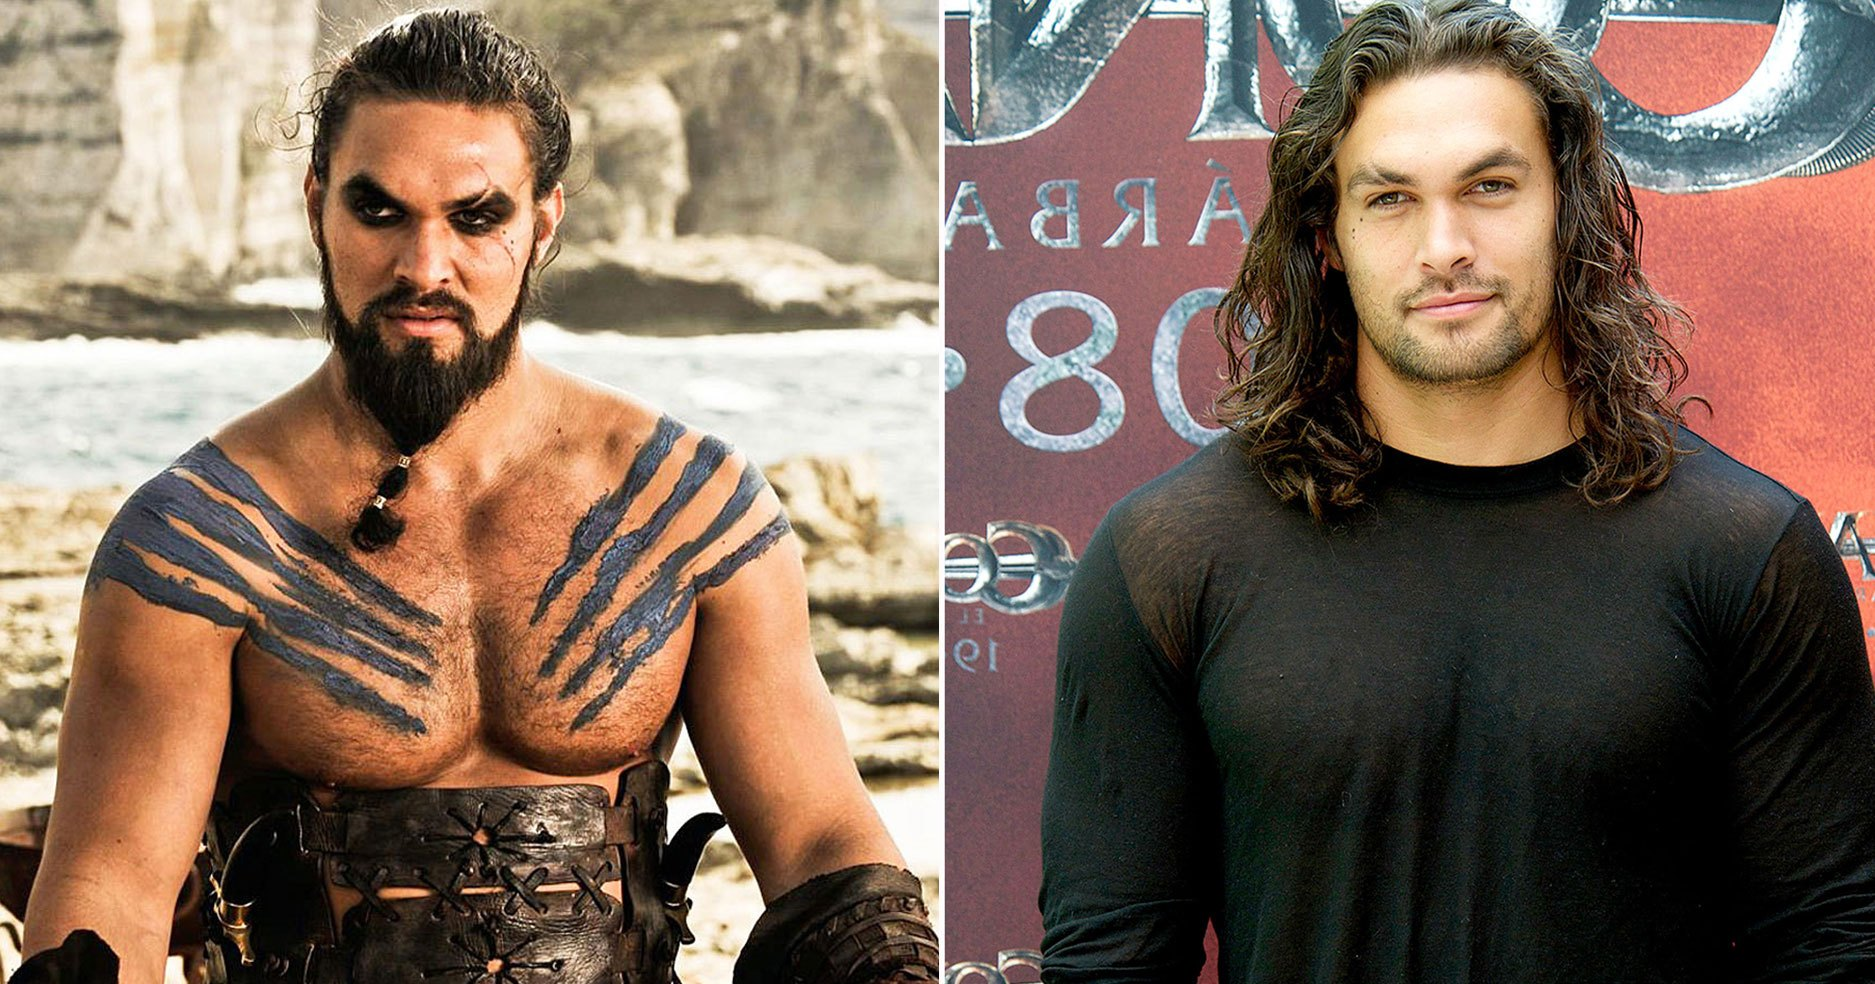 Jason Momoa's Hottest Moments: From 'Baywatch' to 'Game of Thrones' to 'Aquaman'